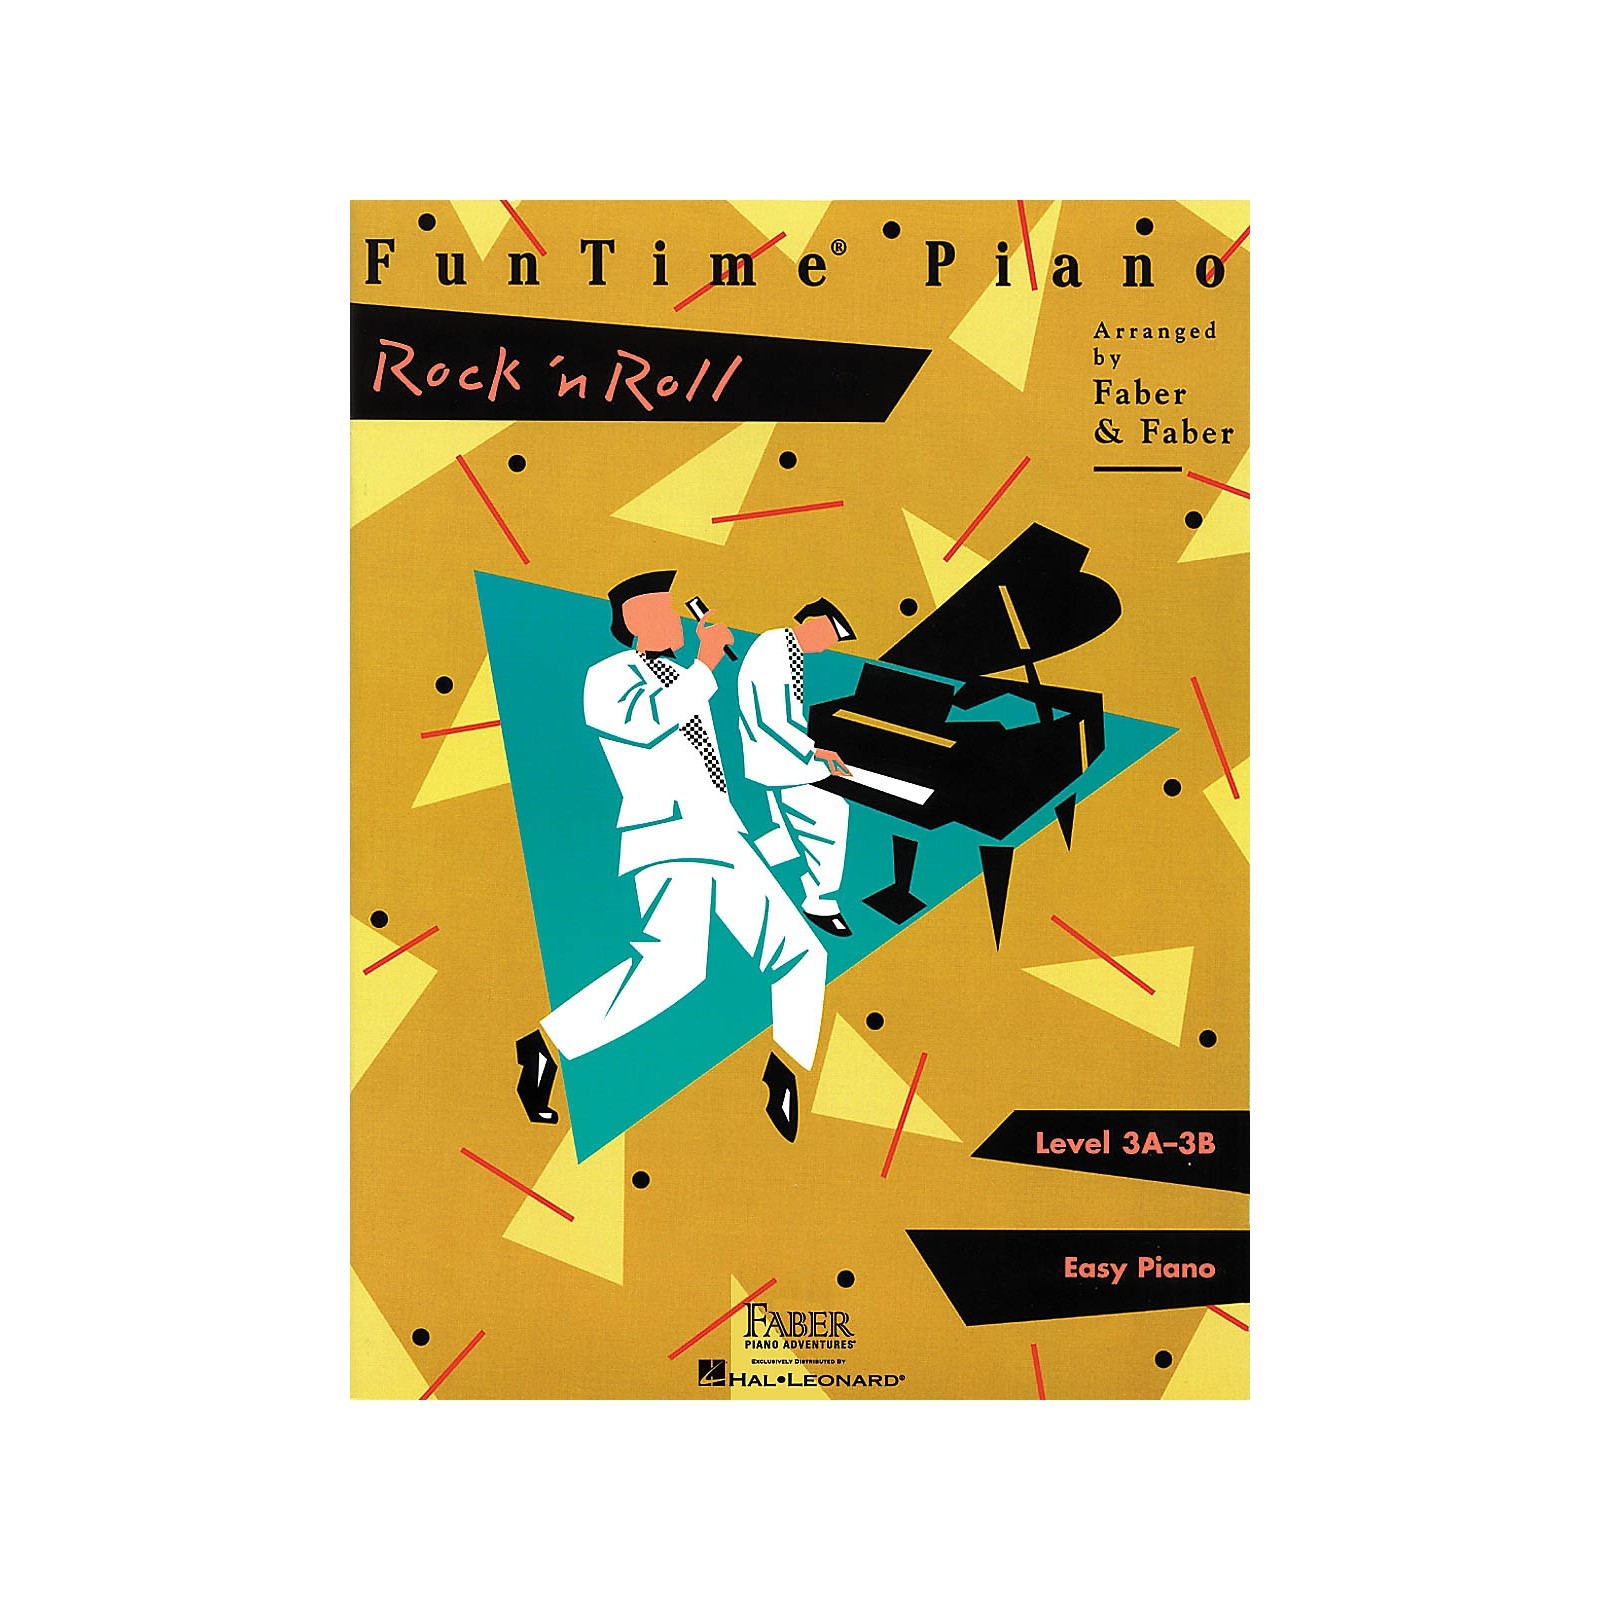 Faber Piano Adventures FunTime Piano Rock 'n' Roll Level 3A-3B